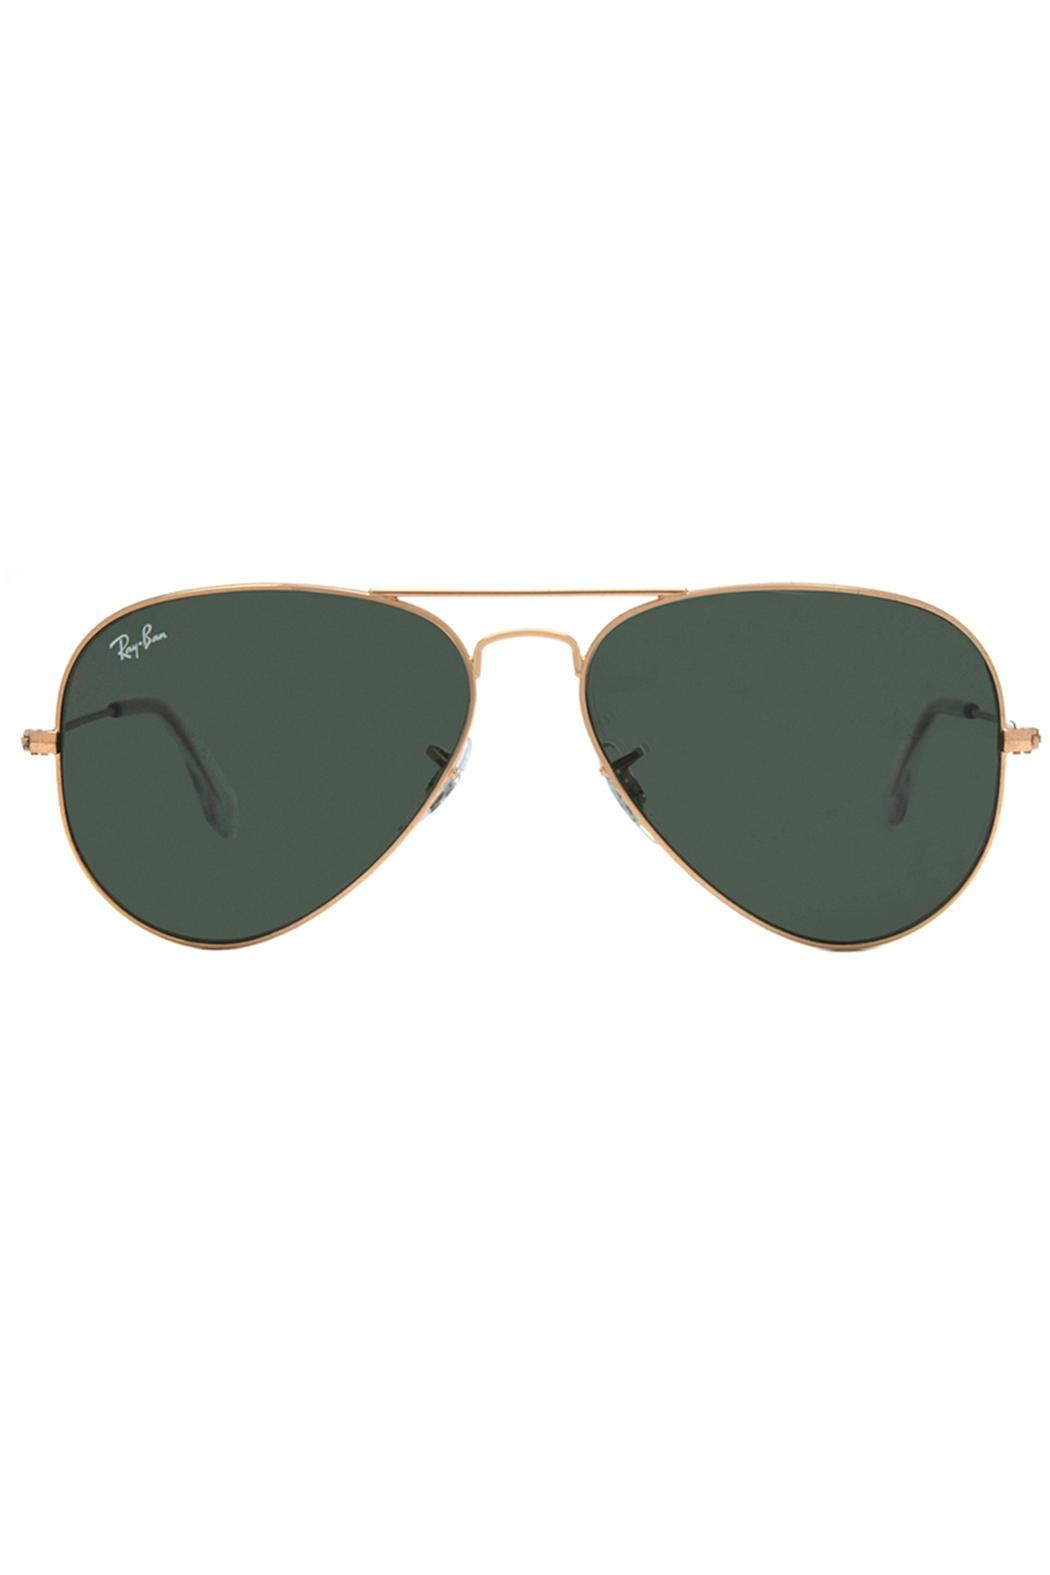 fd9eff9c04 ... coupon for ray ban rayban aviator gold front cropped image 23840 36a3a